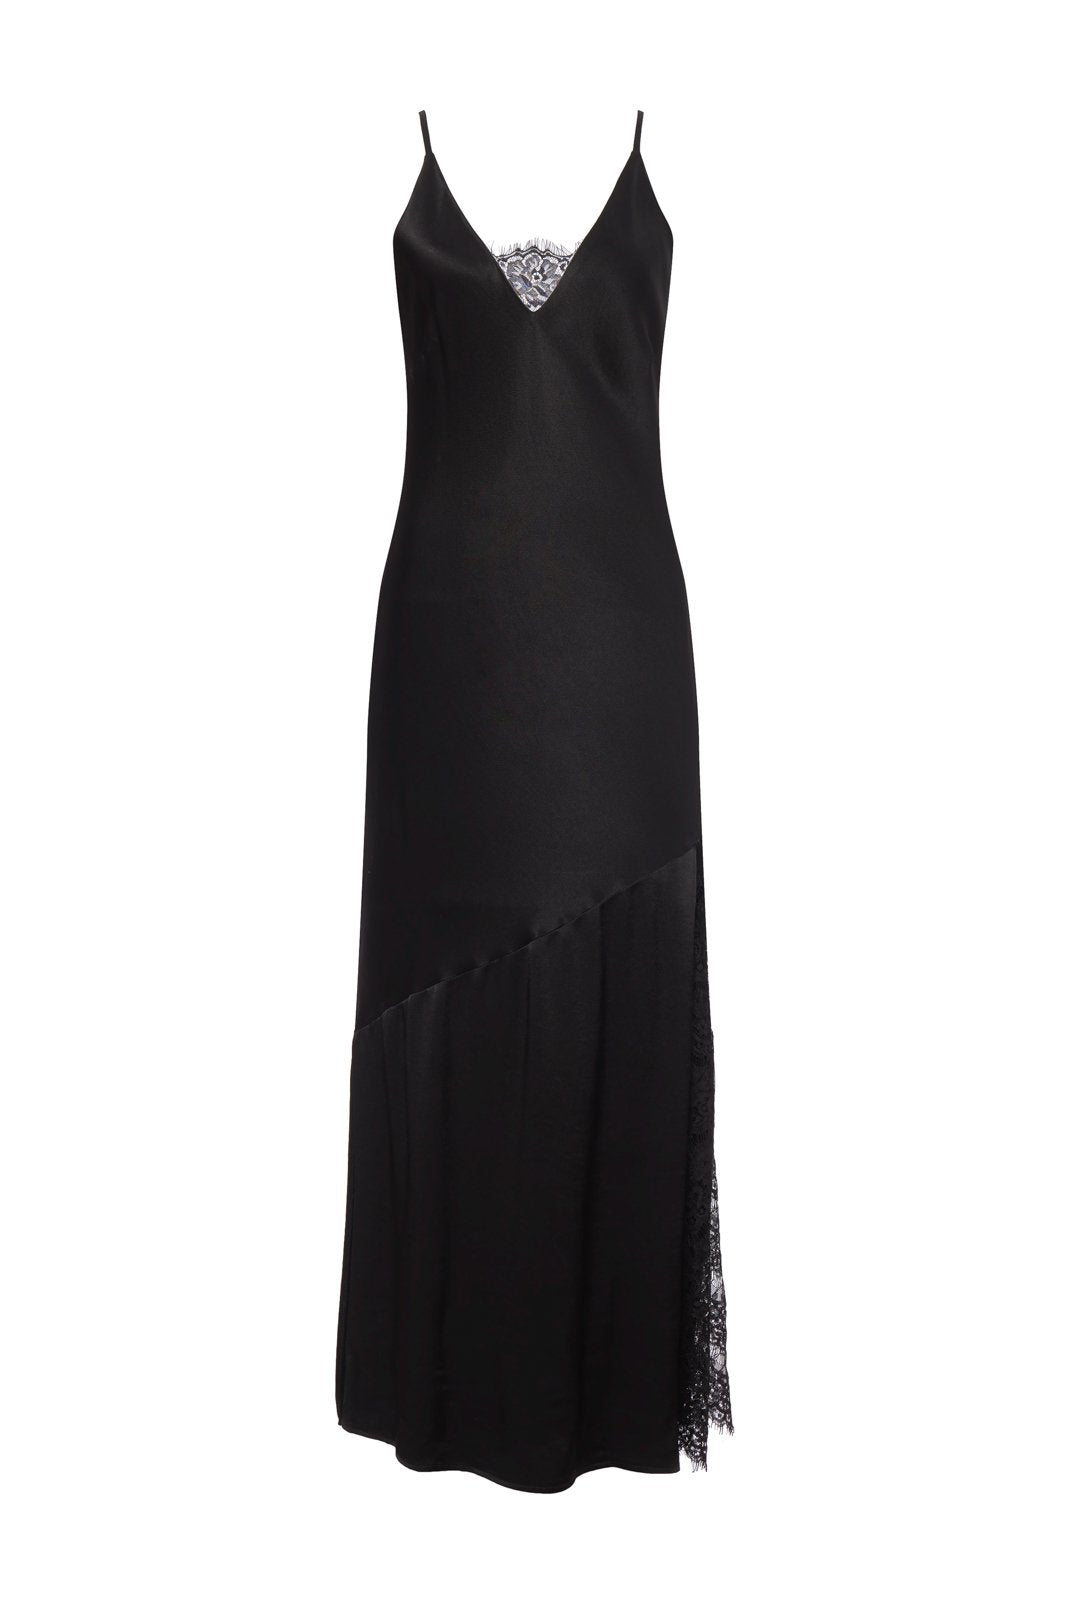 Sienna Long Dress - Black